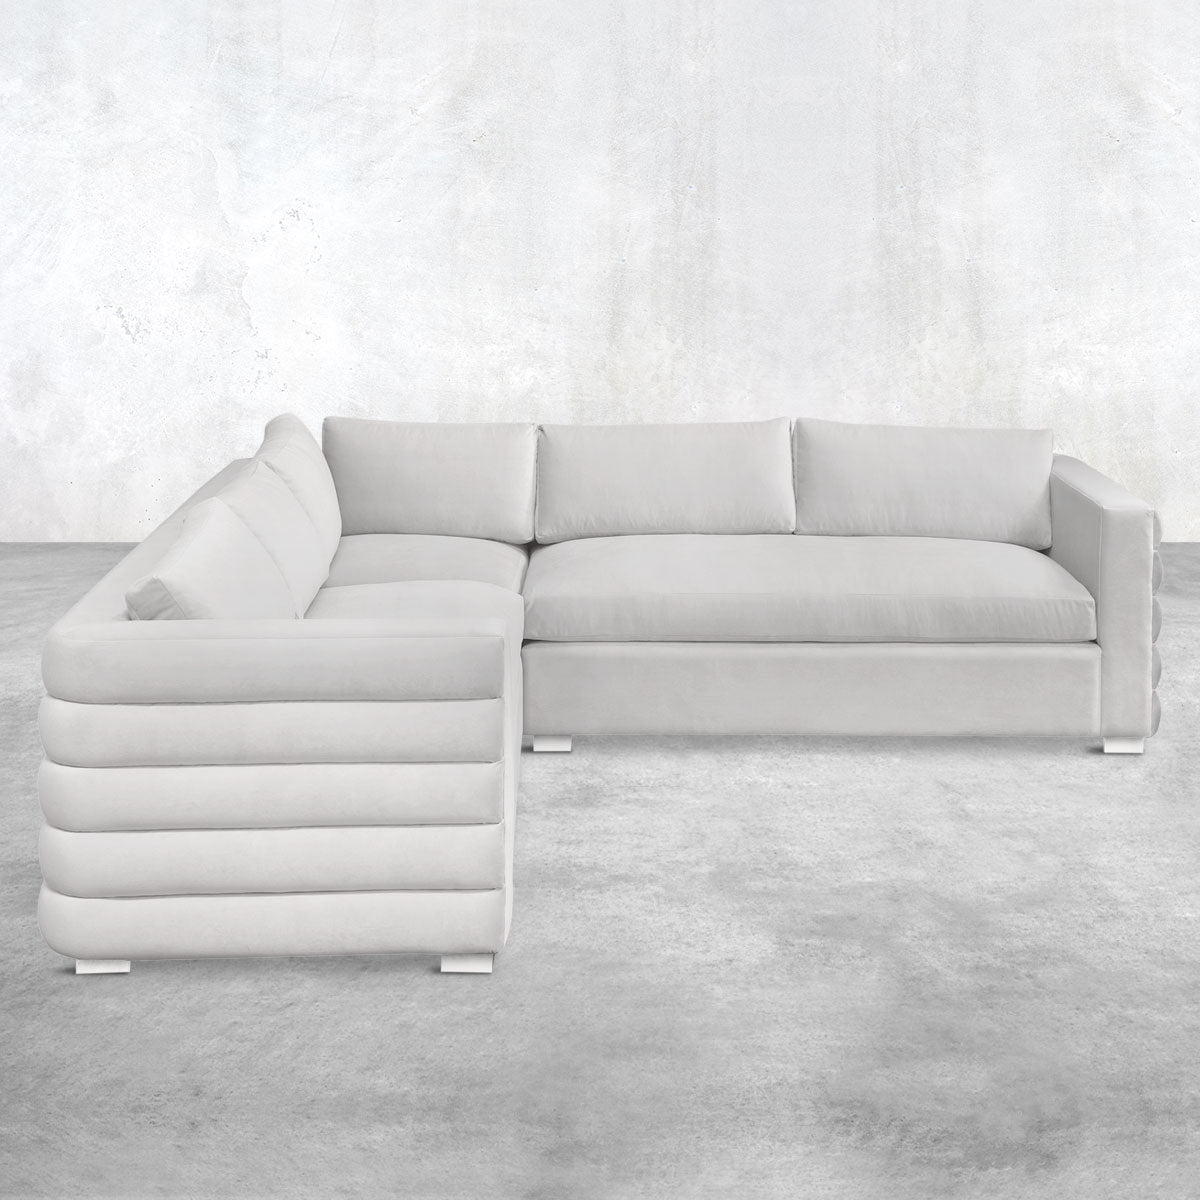 Light gray L-shaped three-piece sectional with pin feet, a pillow back, straight arms and horizontal channel-tufted upholstery on the outside.